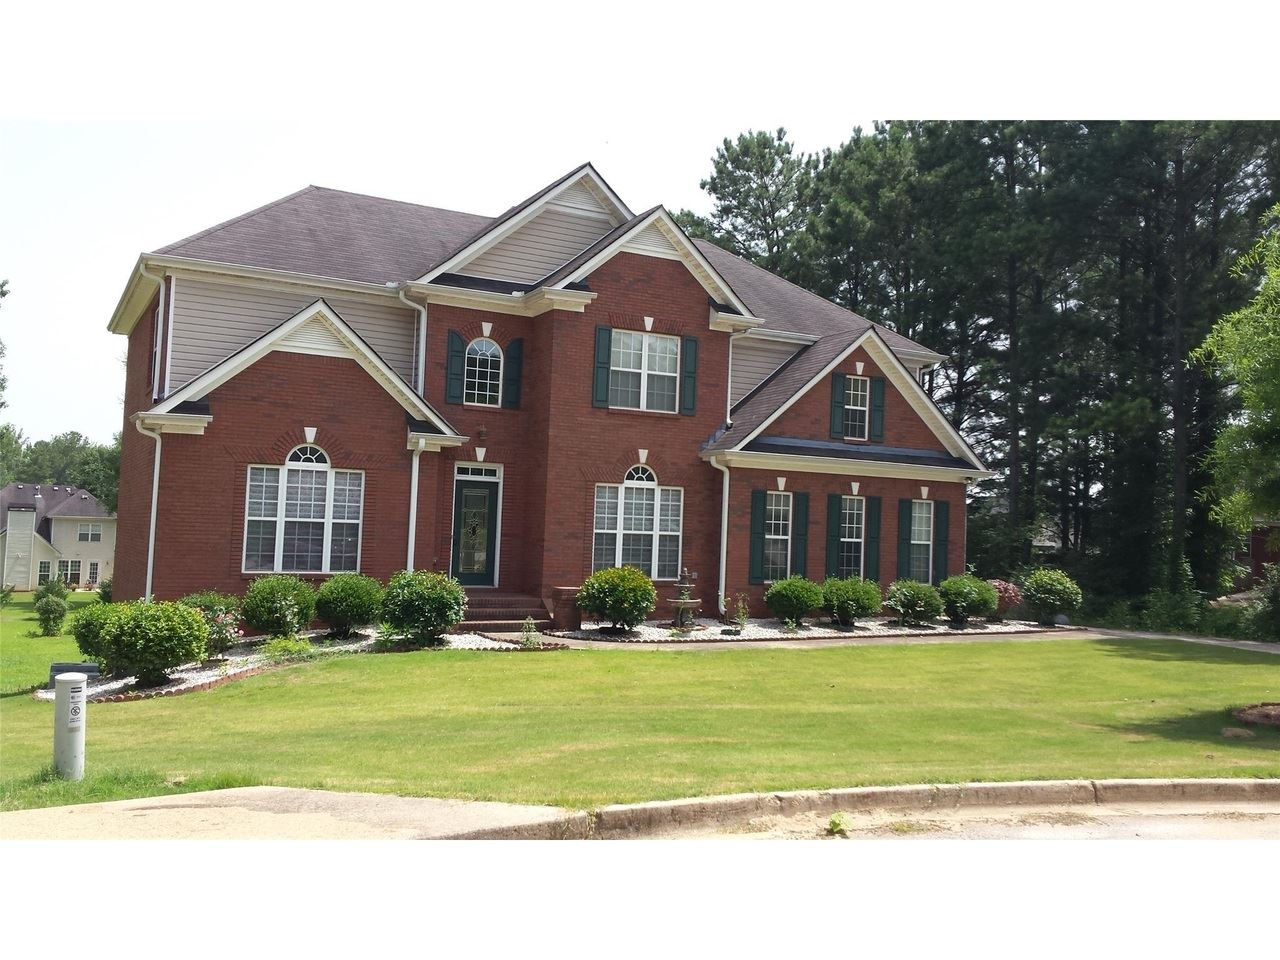 240 Thorn Berry Way, Conyers, GA 30094 - #: 9042303